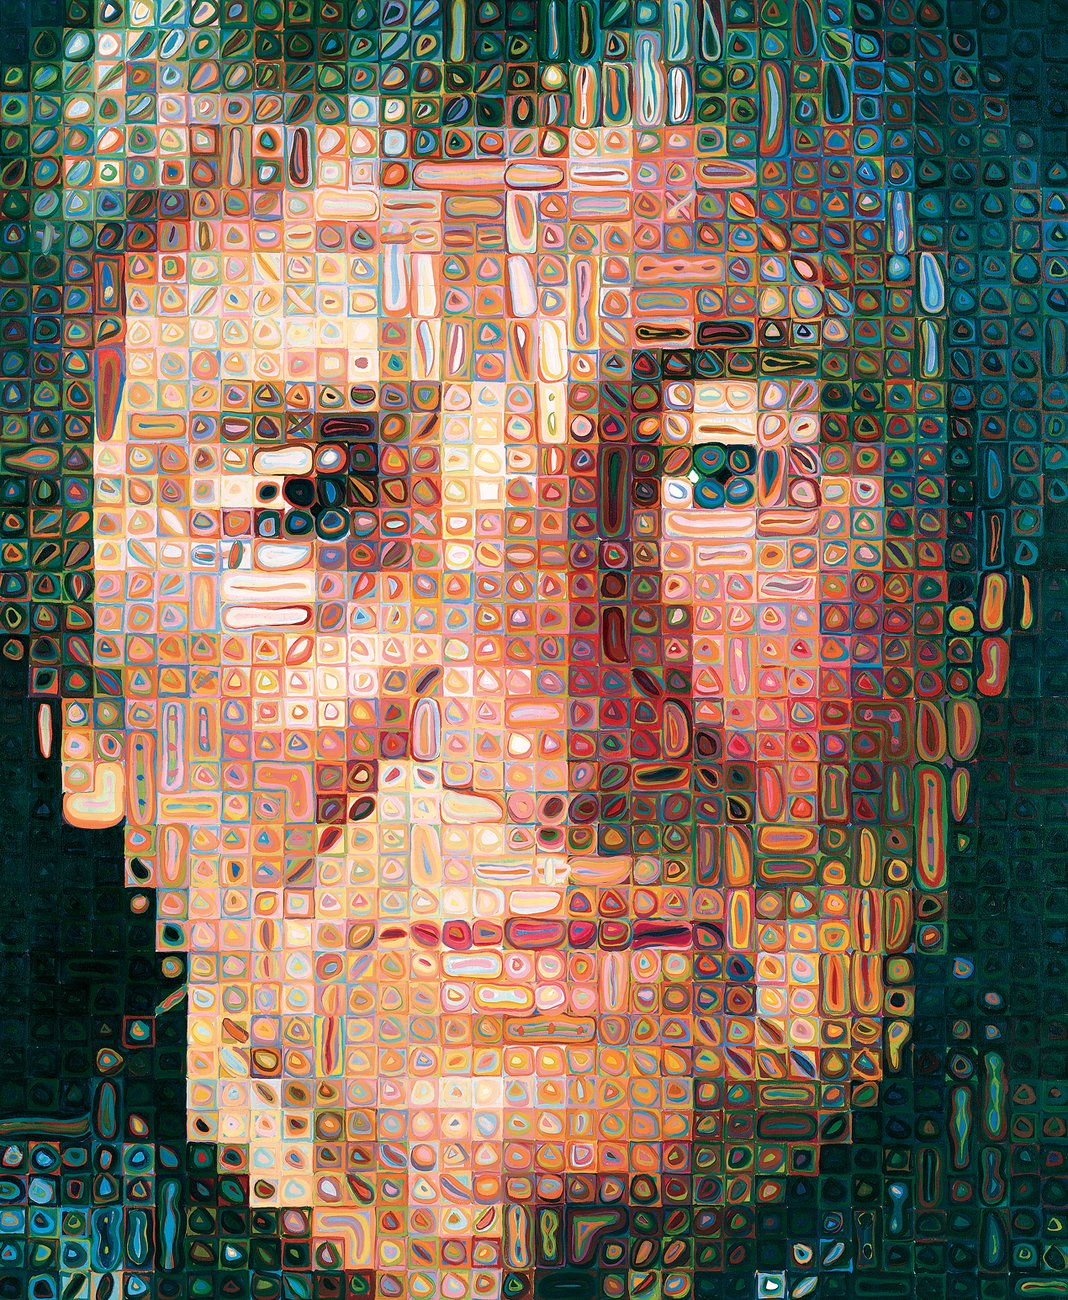 Artwork image, Chuck Close's Agnes